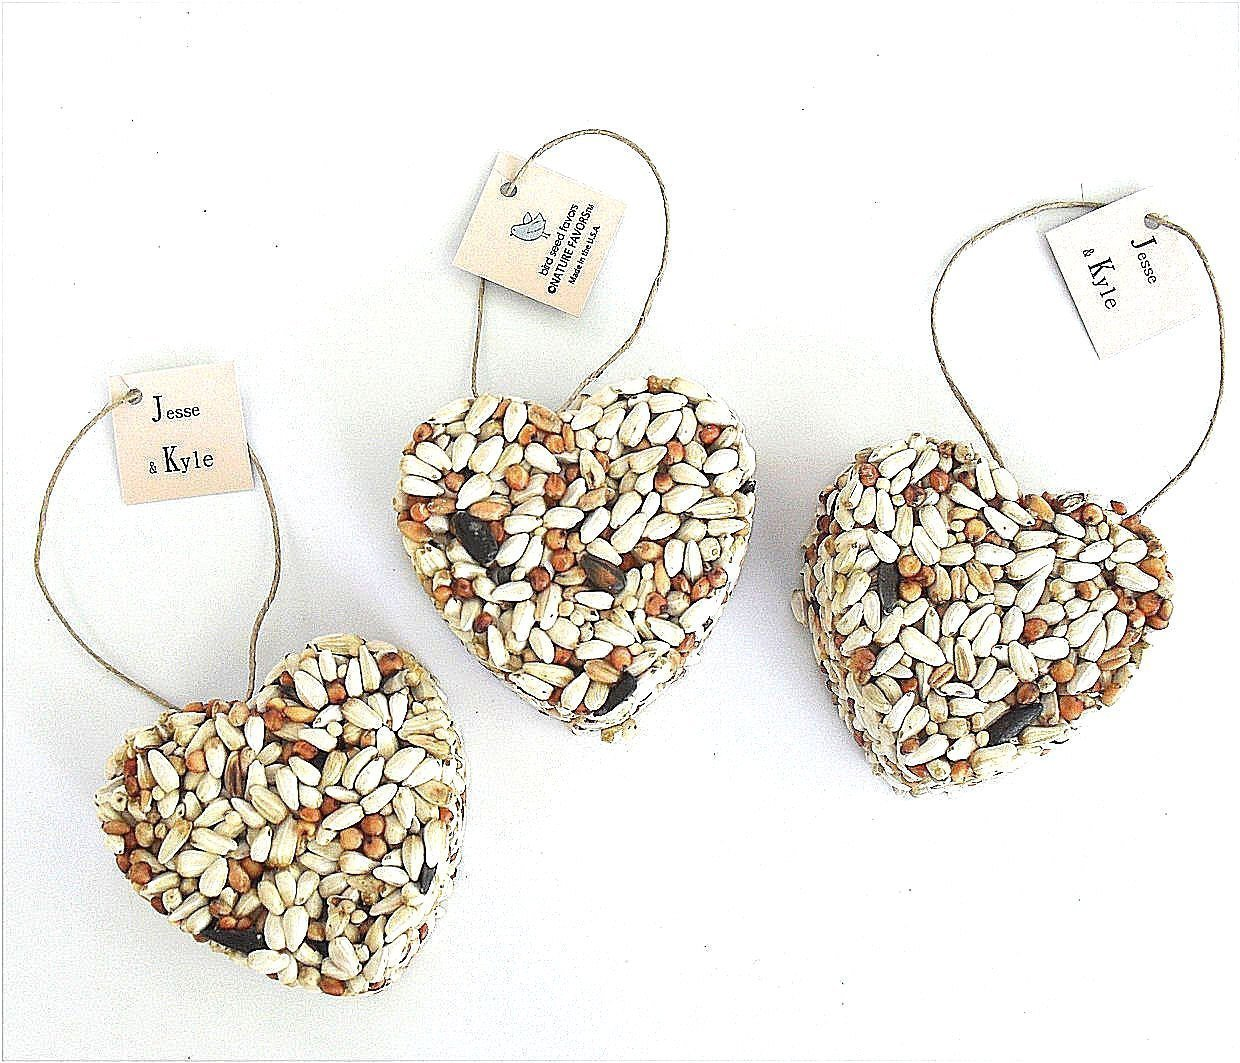 personalized wedding favors, wedding favors, wedding favours, wedding party favors, wedding favor ideas, personalized party favors, personalized favors